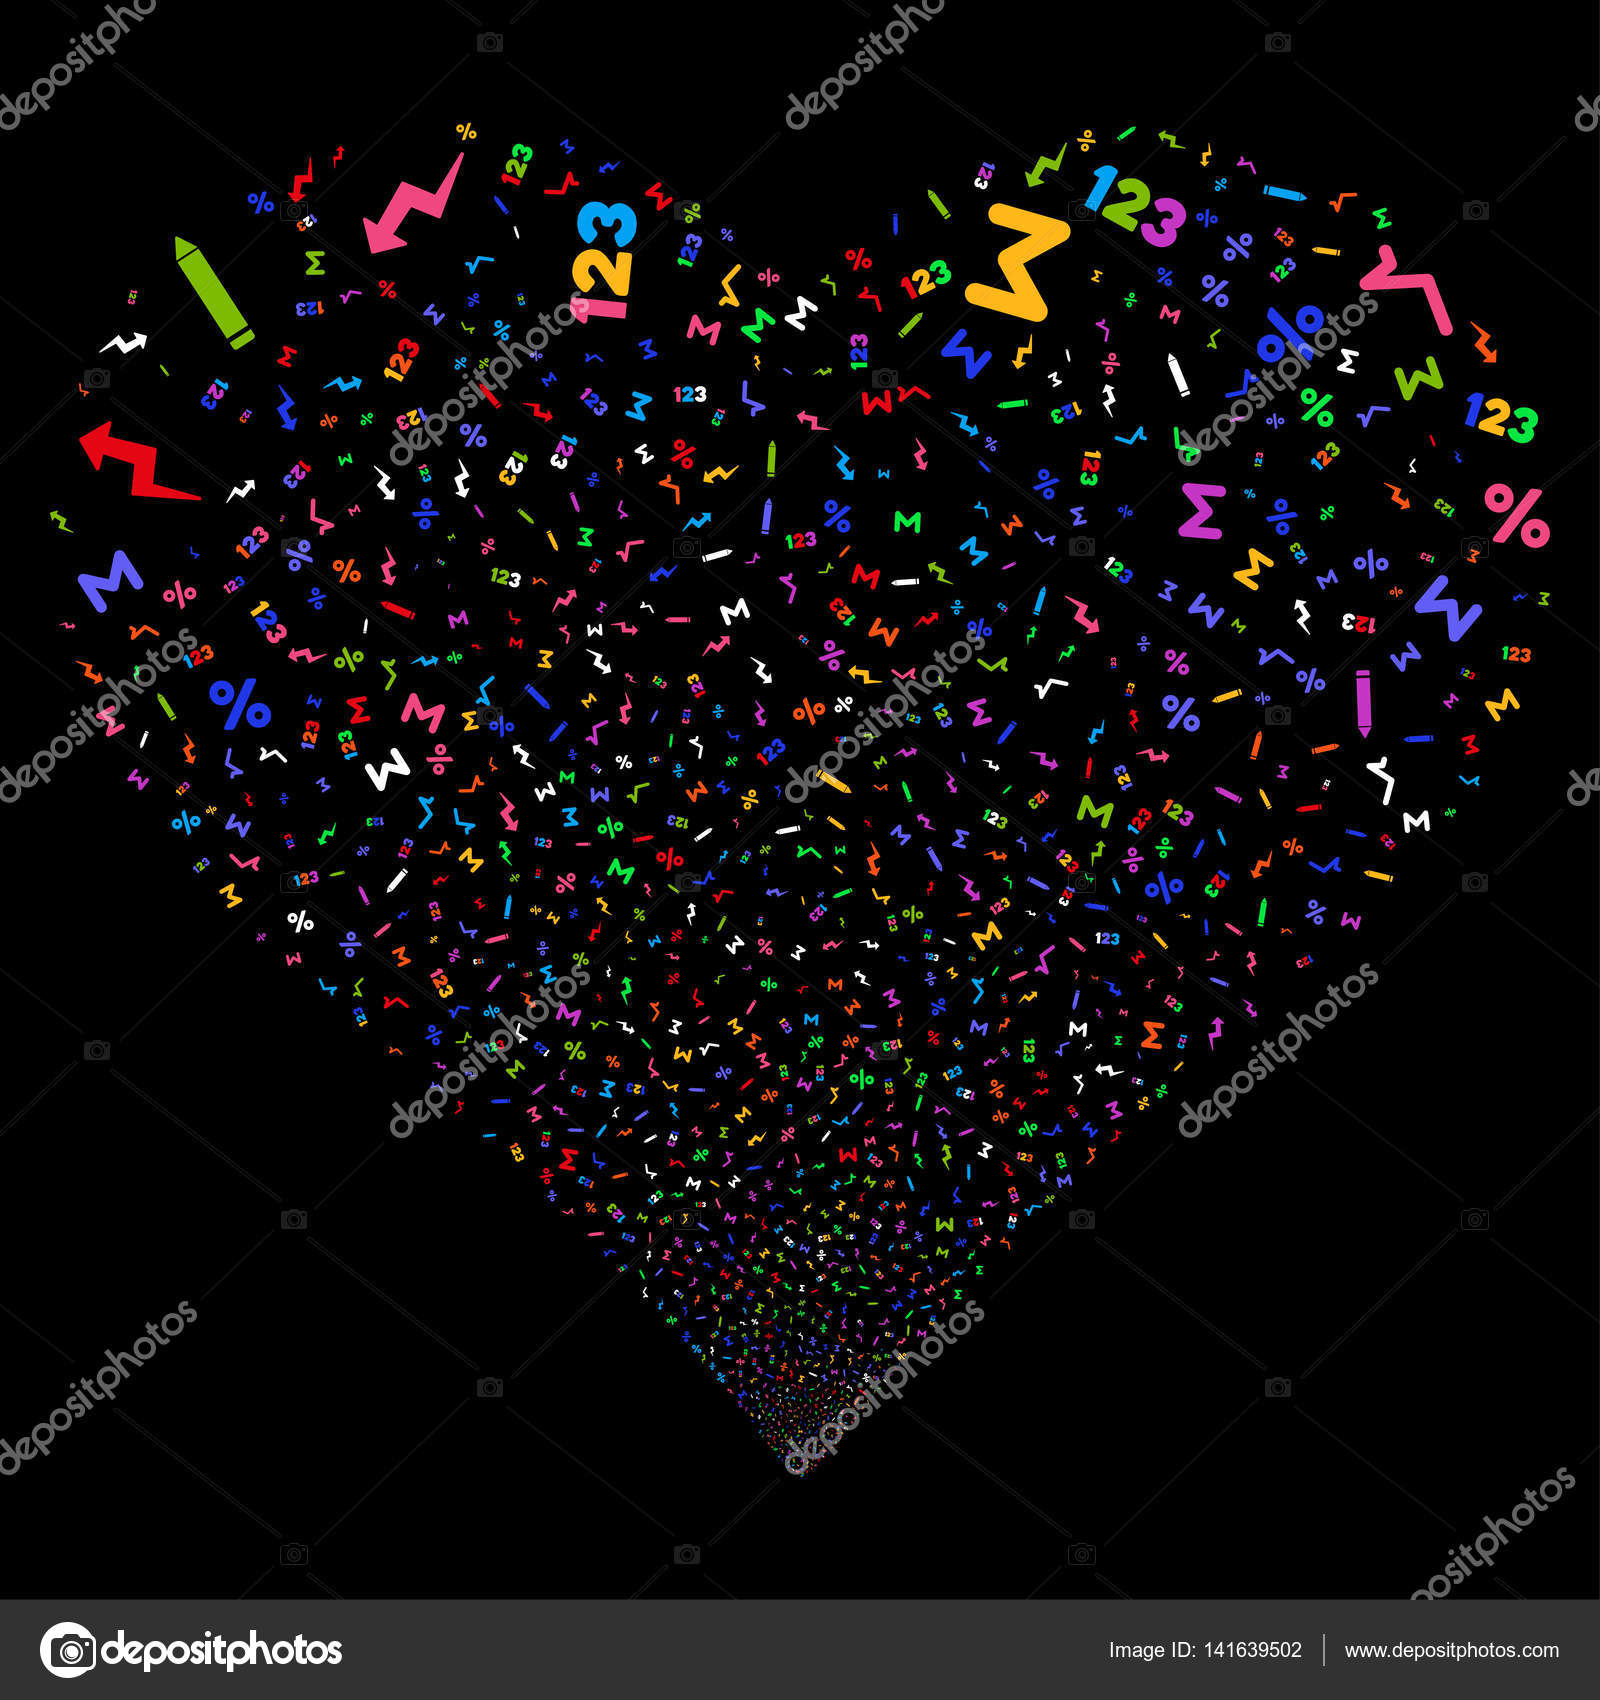 Math symbols fireworks heart stock vector ahasoft 141639502 math symbols fireworks heart stock vector biocorpaavc Images